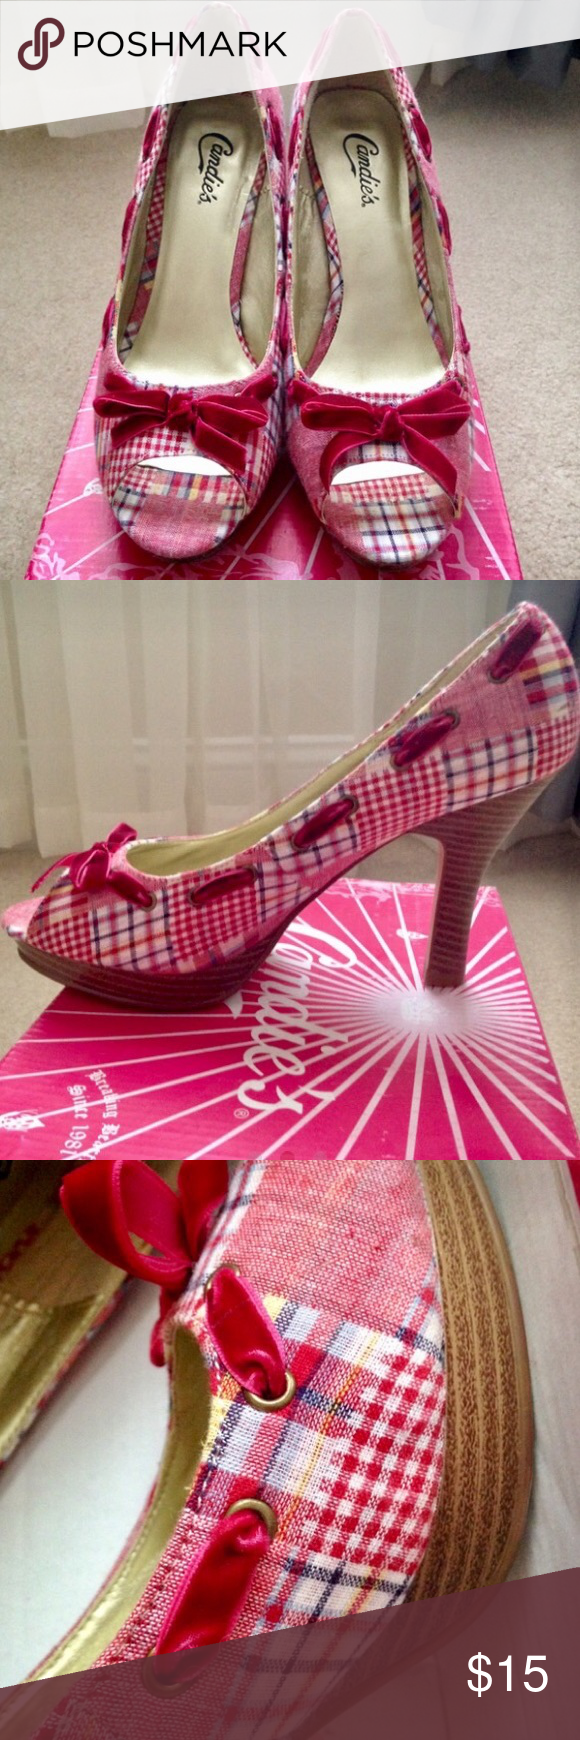 Candie's heels Candie's red plaid peep toe pumps. Used a couple of times and in extremely excellent condition. No scuff marks or flaws. Size 9 1/2. Box included. Candie's Shoes Heels